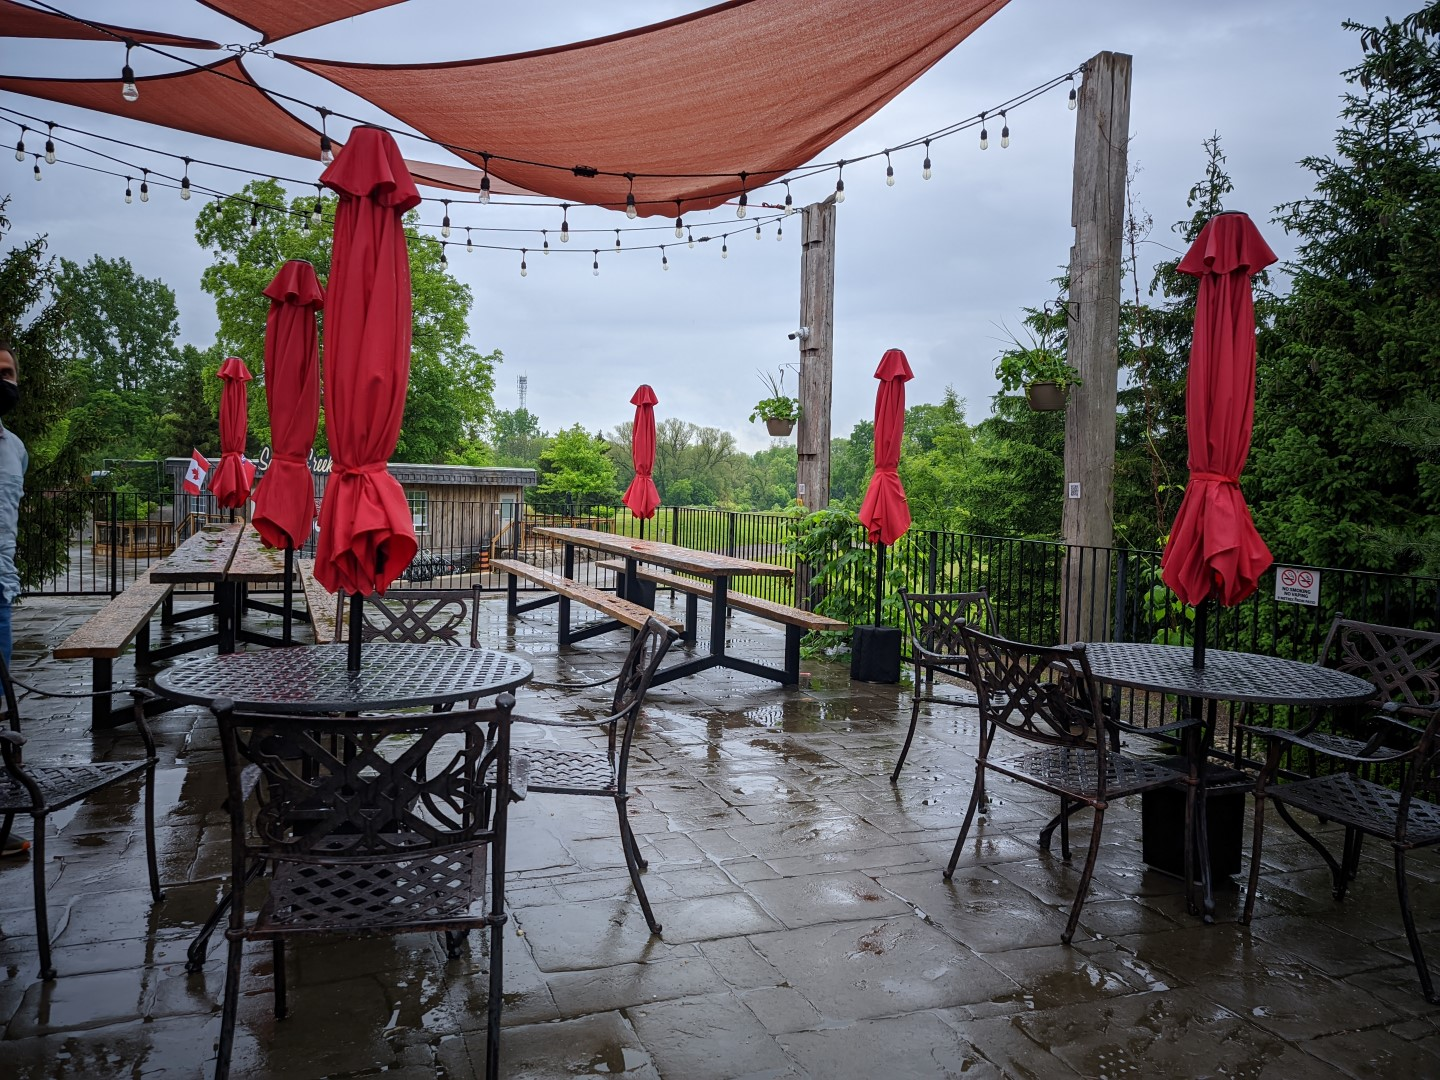 Brickhouse patio in Oxford County Cheese Trail